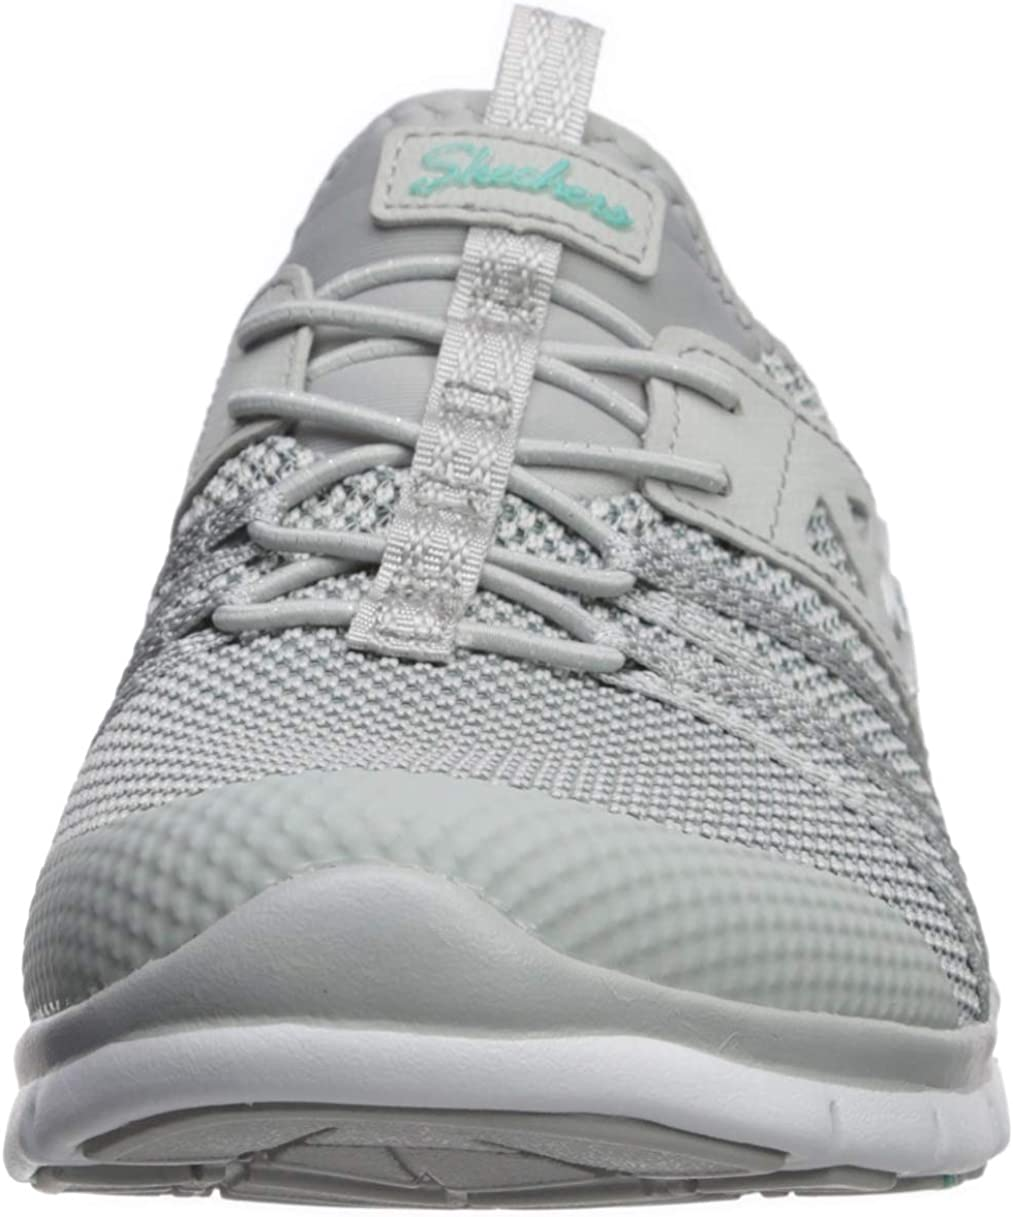 Skechers Womens Gratis-What a Sight Sneaker